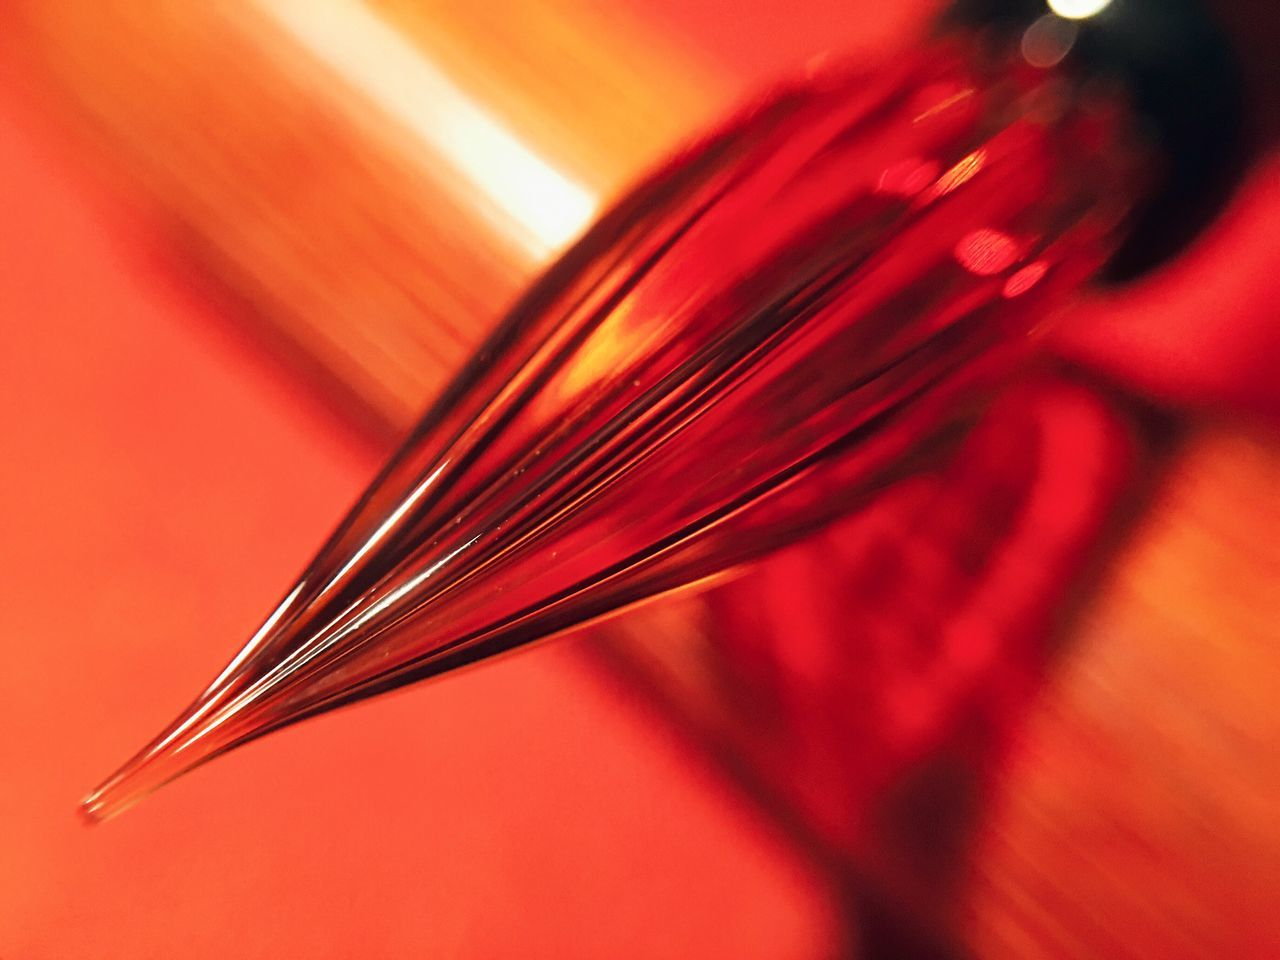 Red Close-up Glass Pen Handmade Pen Handmade Lieblingsteil